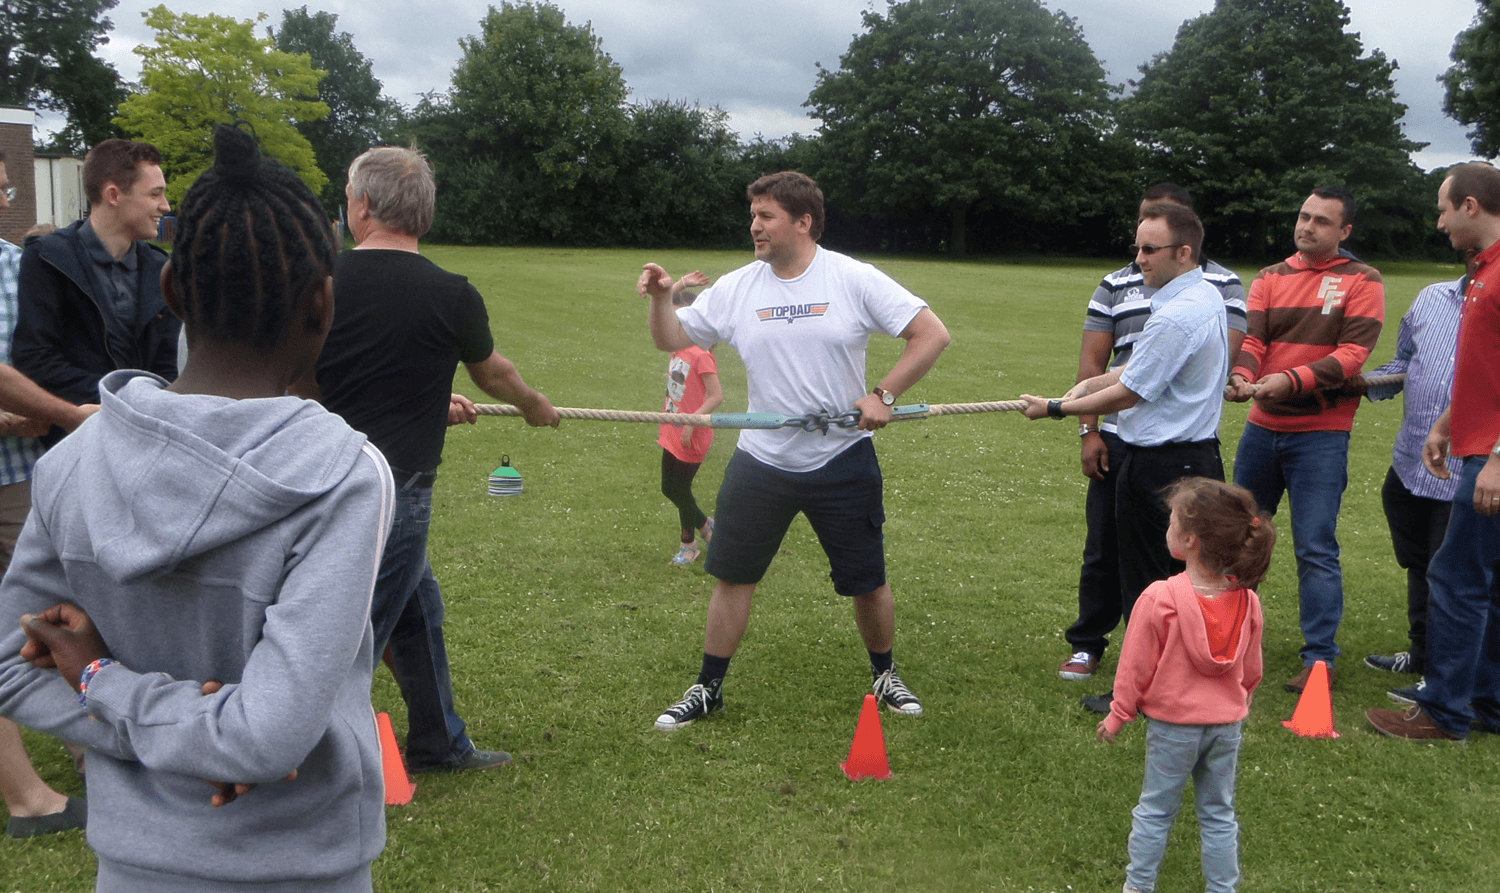 Mark refereeing a Tug-of-War at his local church's Fathers' Day BBQ.